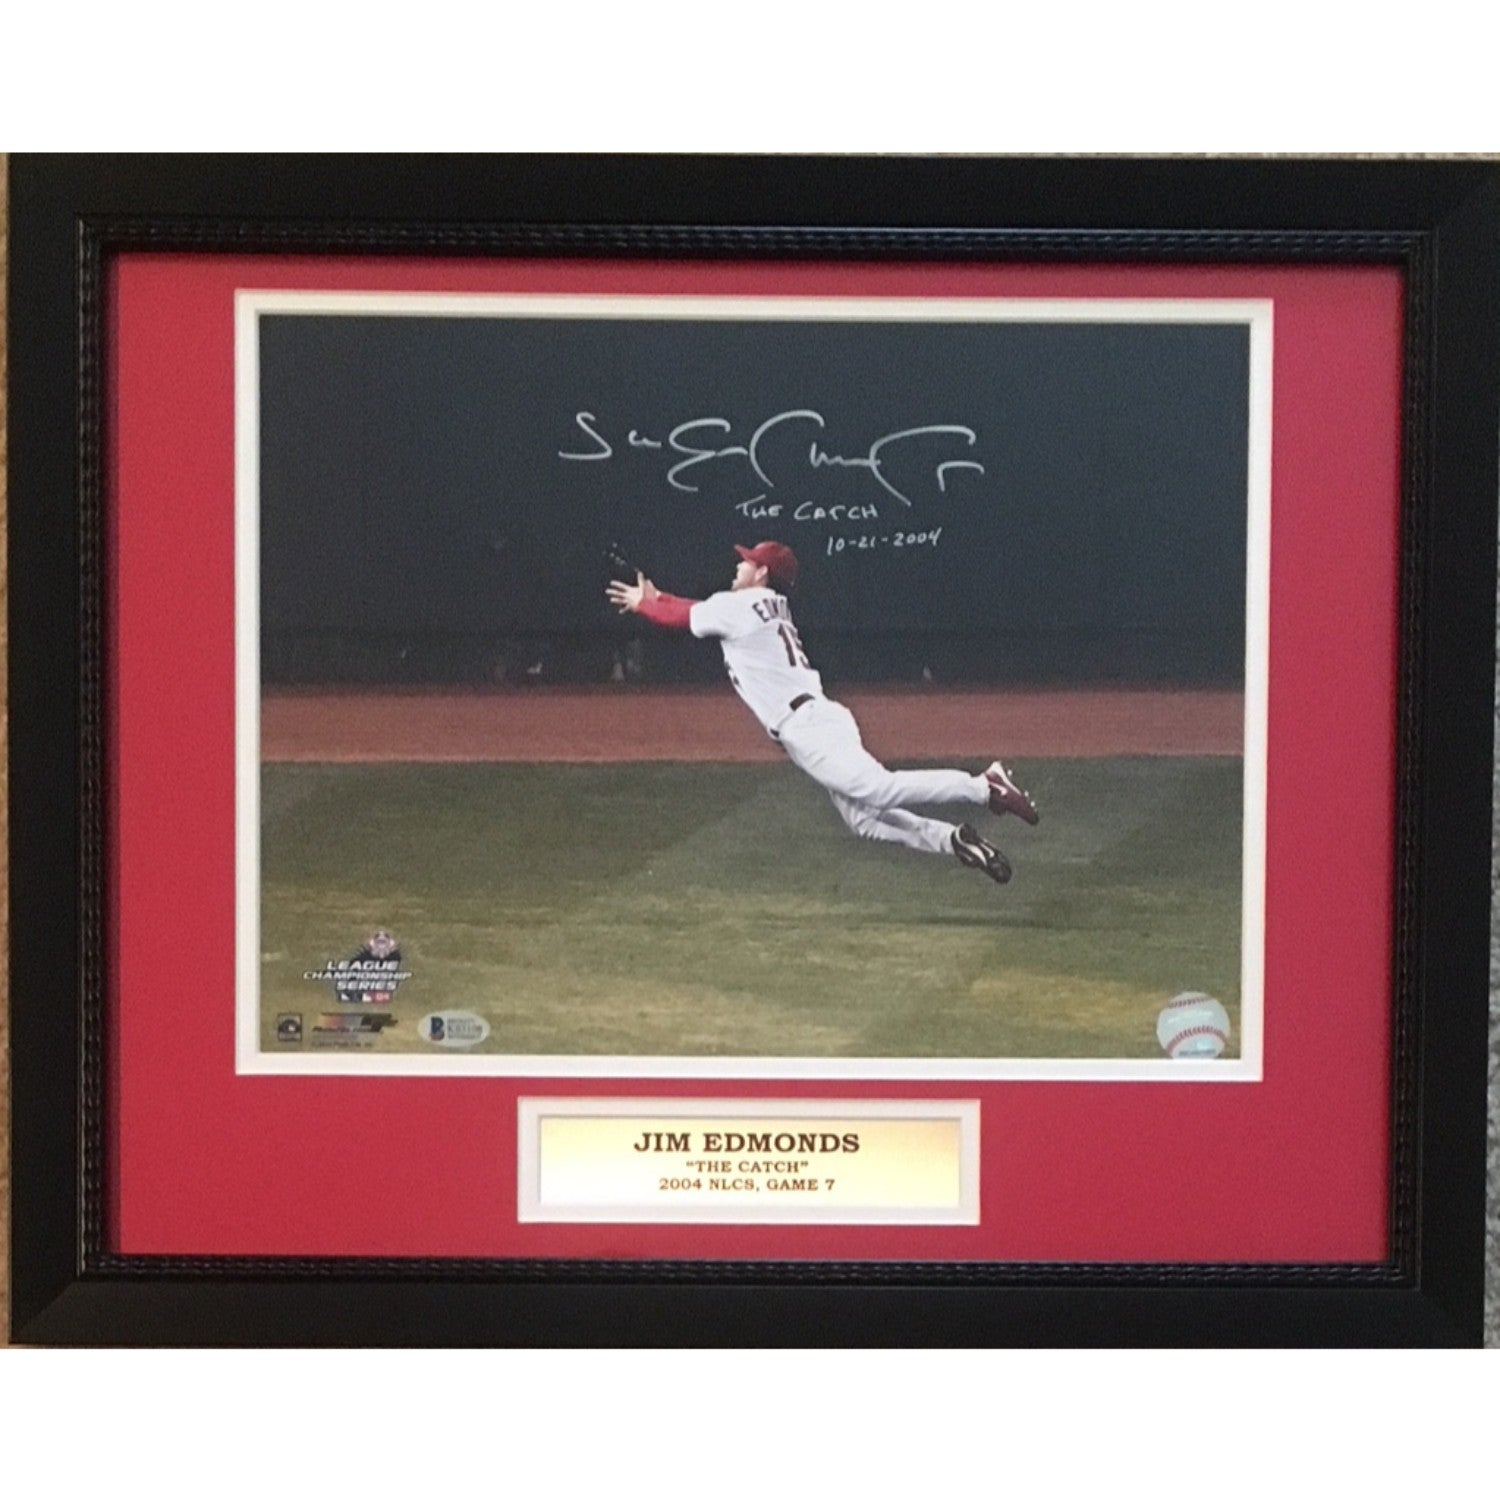 Jim Edmonds Autographed St Louis Cardinals 2004 NLCS Game 7 Catch Signed 11x14 Baseball Photo Framed Beckett BAS COA-Powers Sports Memorabilia